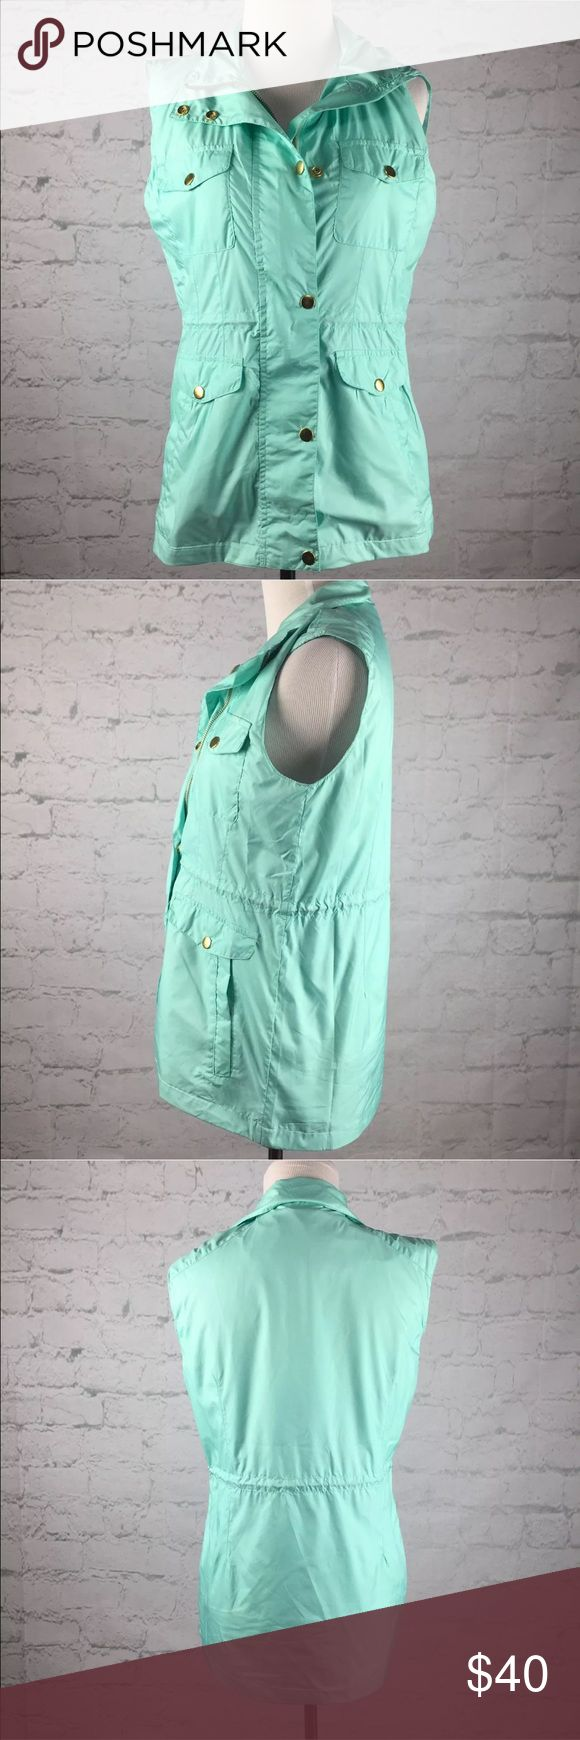 Peter Millar zip up vest size small NWT Peter Millar  Womens small  Brand new with tags, Peter Millar vest in spa blue.  Cinch waist, hits at hips/ just below hips. Gold hardware.  Zipper closure and snap buttons.  Colorful lining. Peter Millar Jackets & Coats Vests